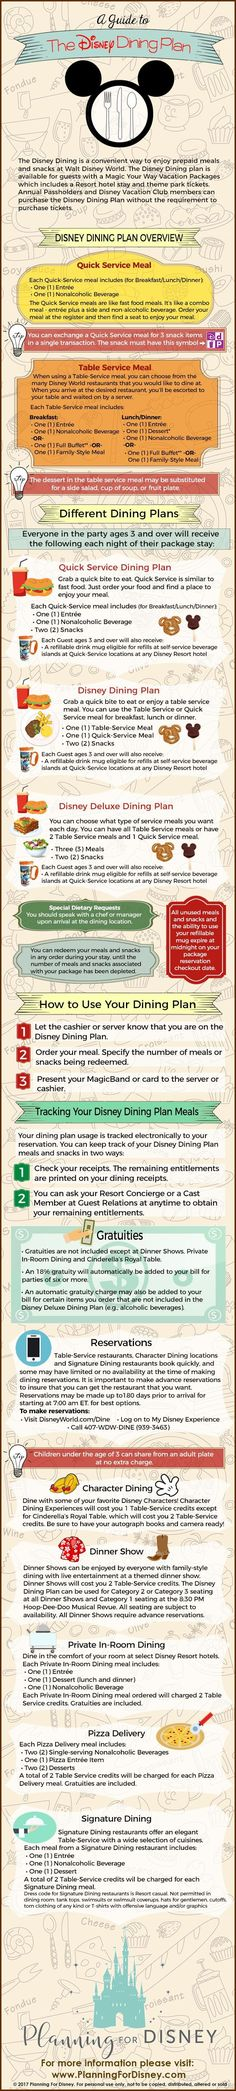 ede20e885 133 Best Disneybound images in 2019 | Disney parks, Disney vacations ...